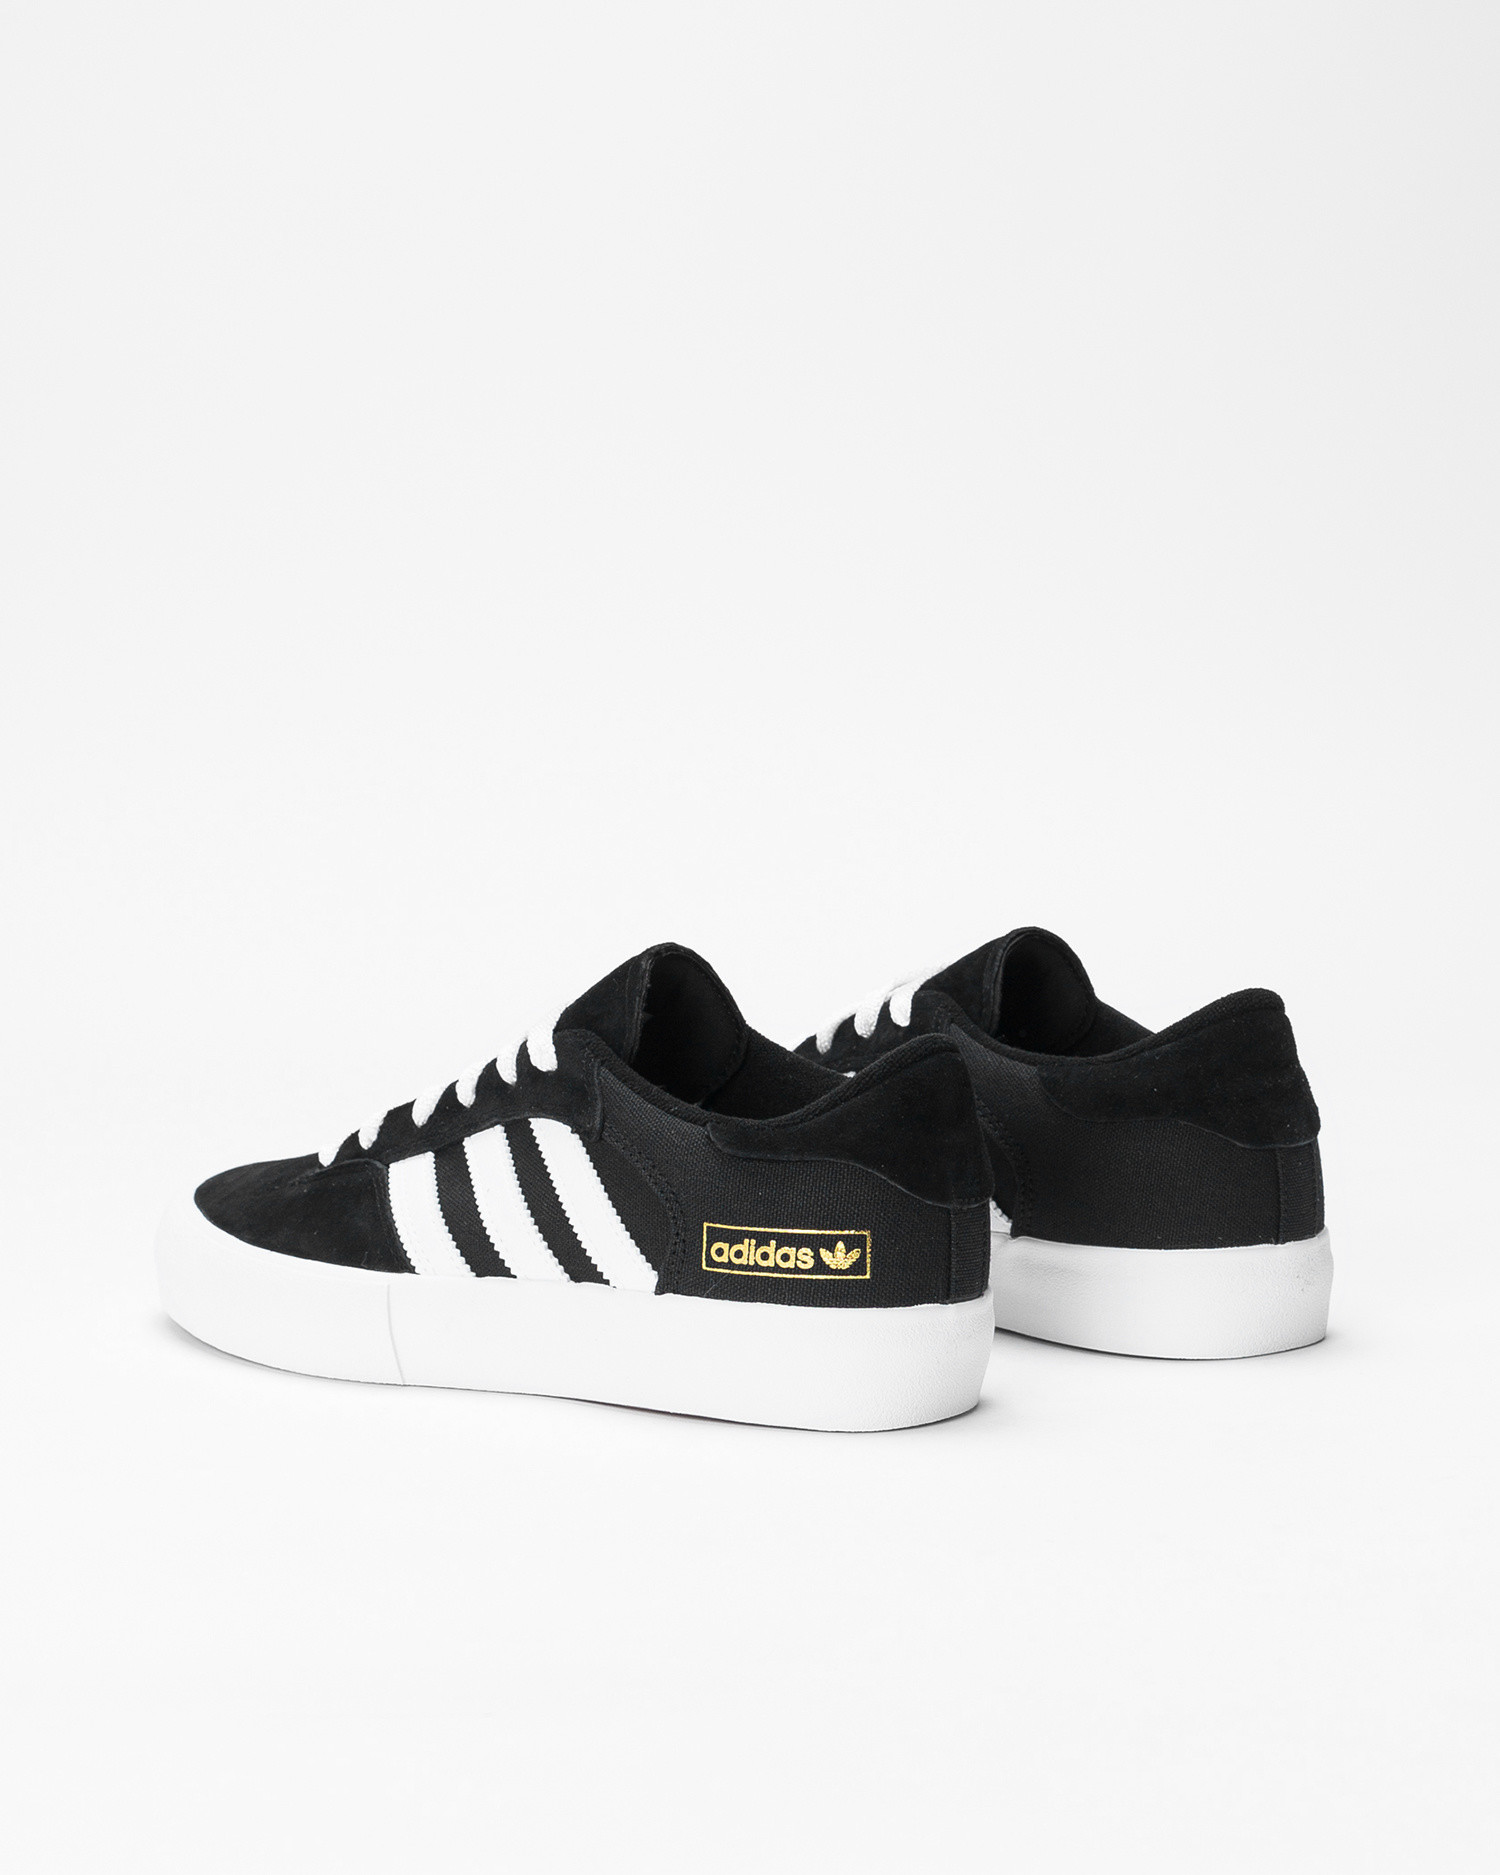 Adidas Matchbreak Core Black/Cloud White/Gold Metallic